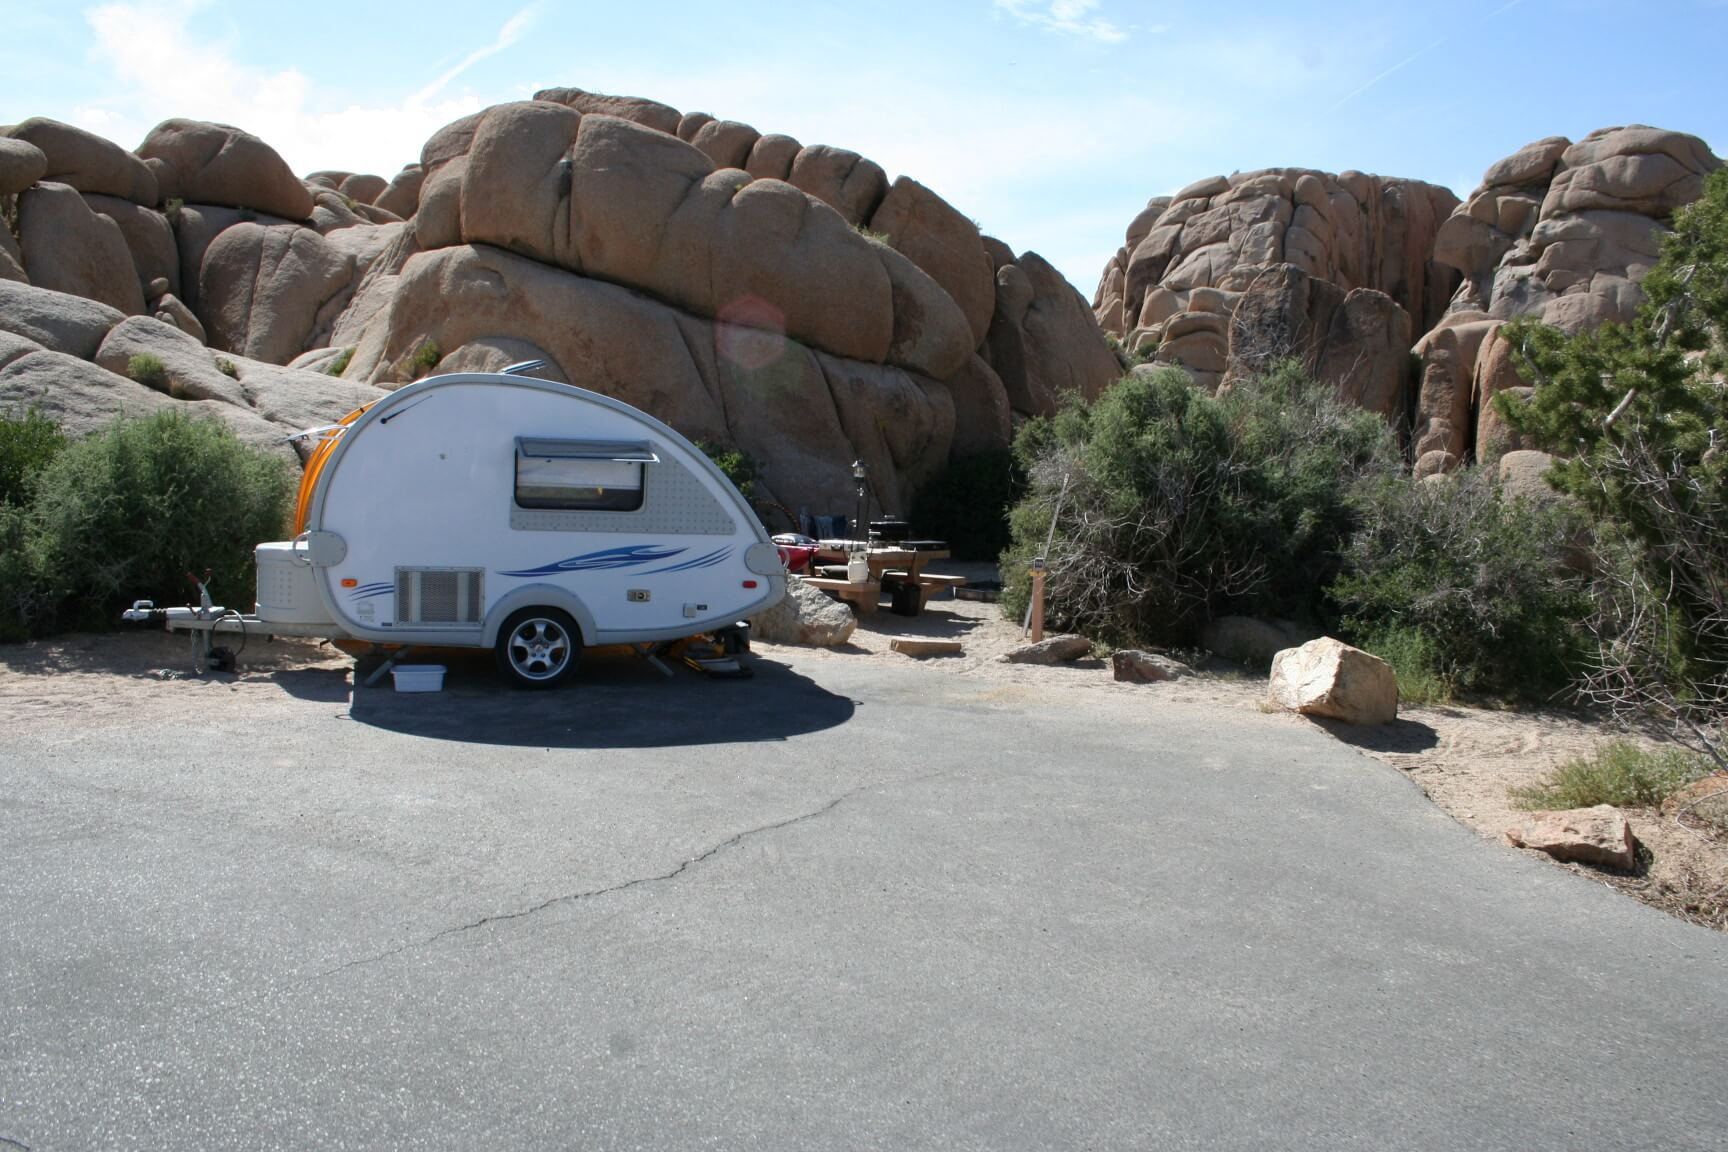 Joshua Tree National Park's Best Campsites Jumbo Rocks #79